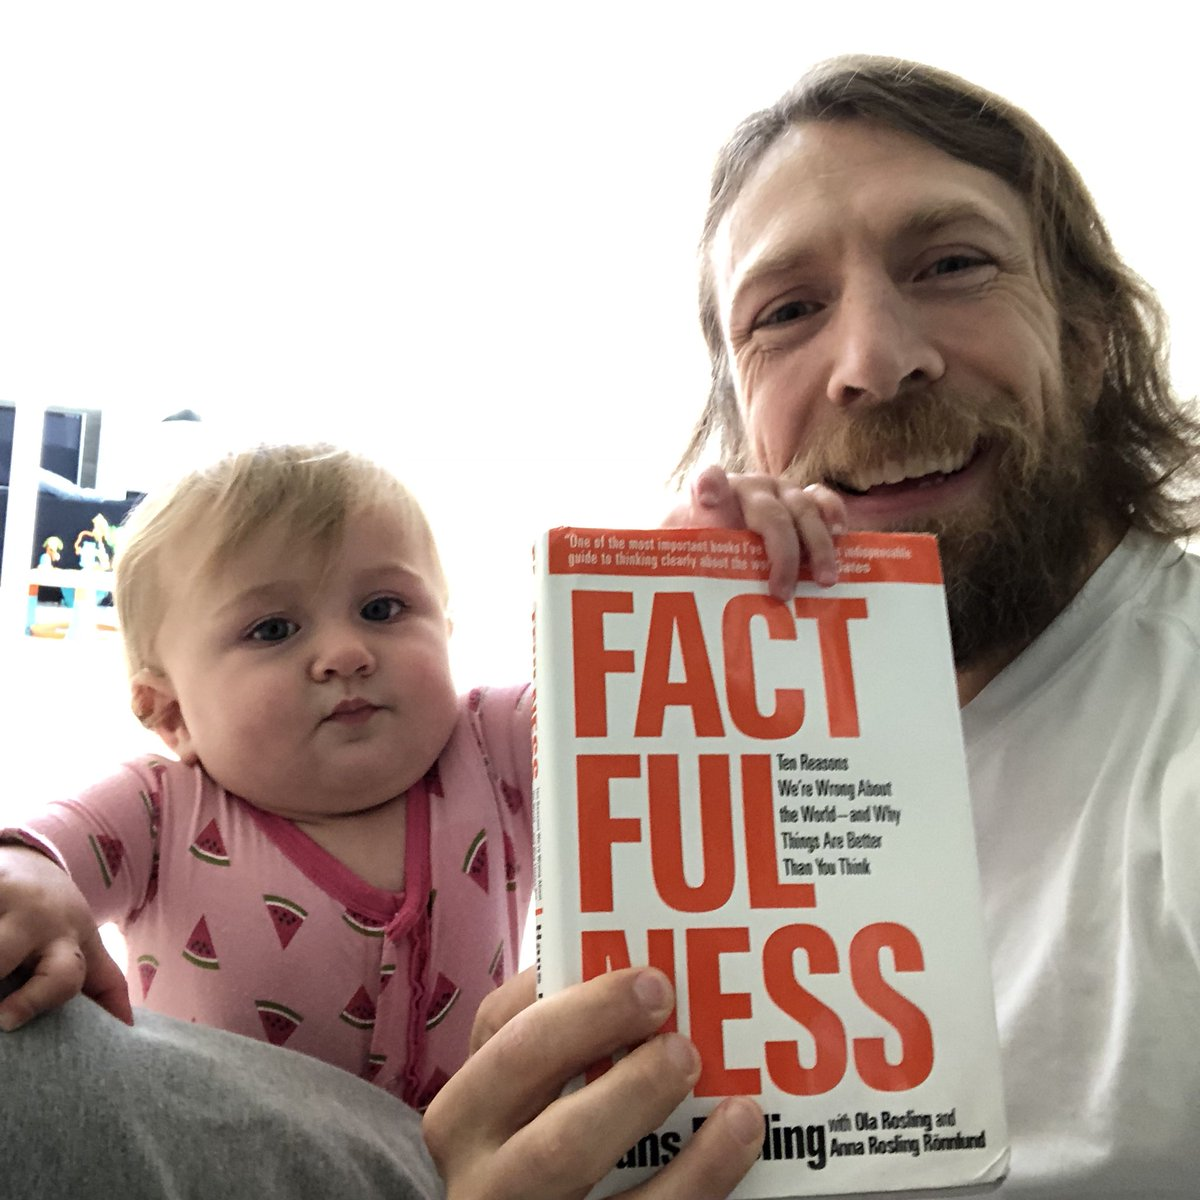 Hey guys, remember my book club? If you want to win a copy of our first book club book, Factfulness, just share a photo of you reading any book & use the hashtag #WhyNotNowReadABook. @amyjomartin & I are picking winners randomly. Thanks for the books @Flatironbooks!